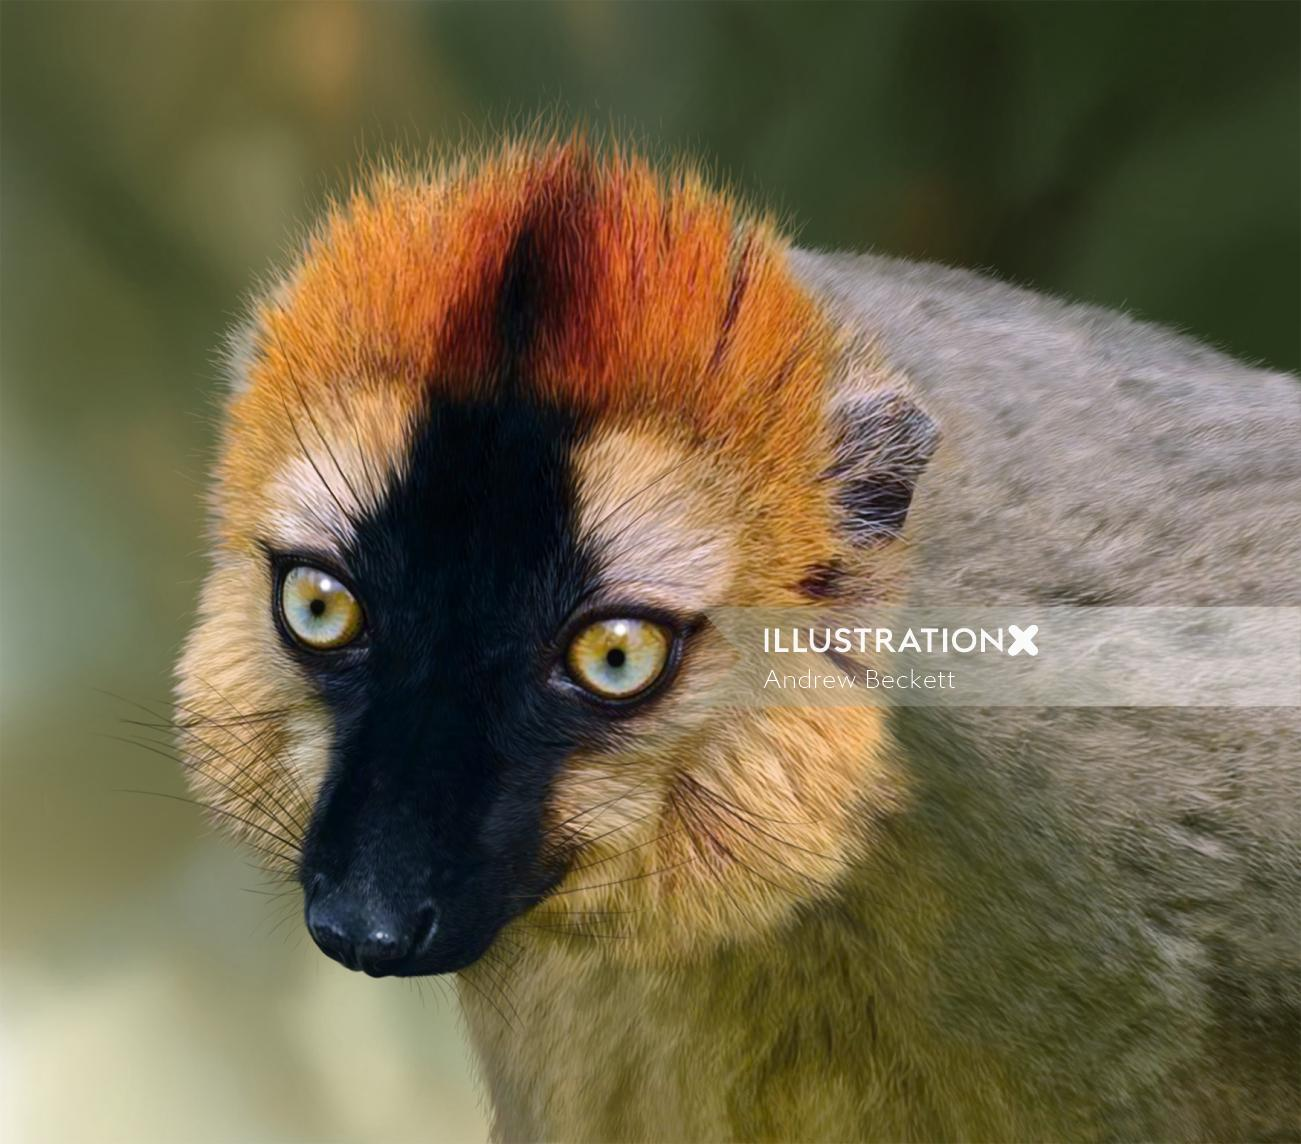 Re-fronted Brown Lemur illustration